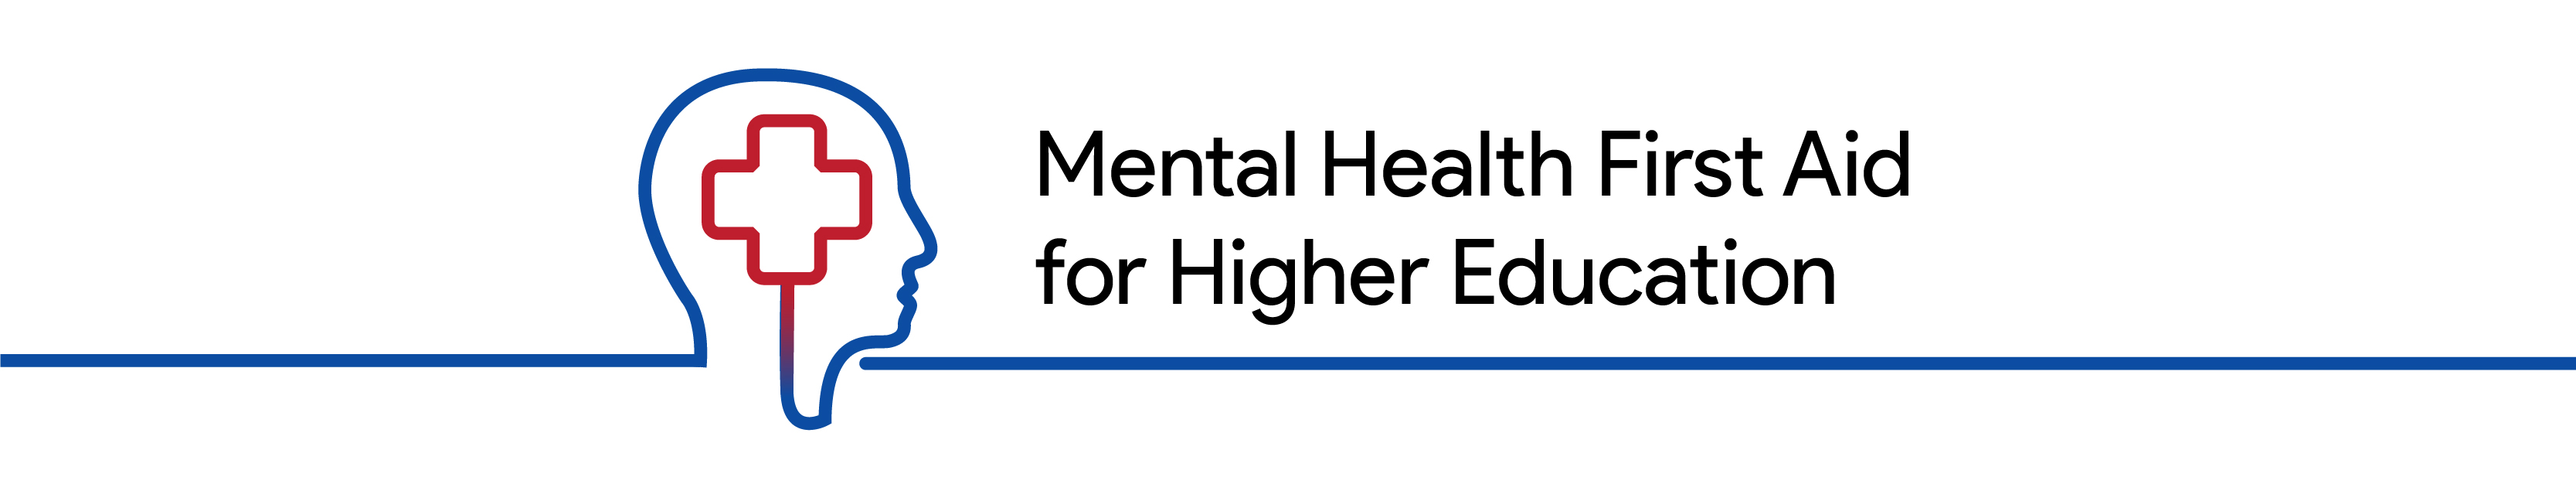 Mental Health First Aid for Higher Education